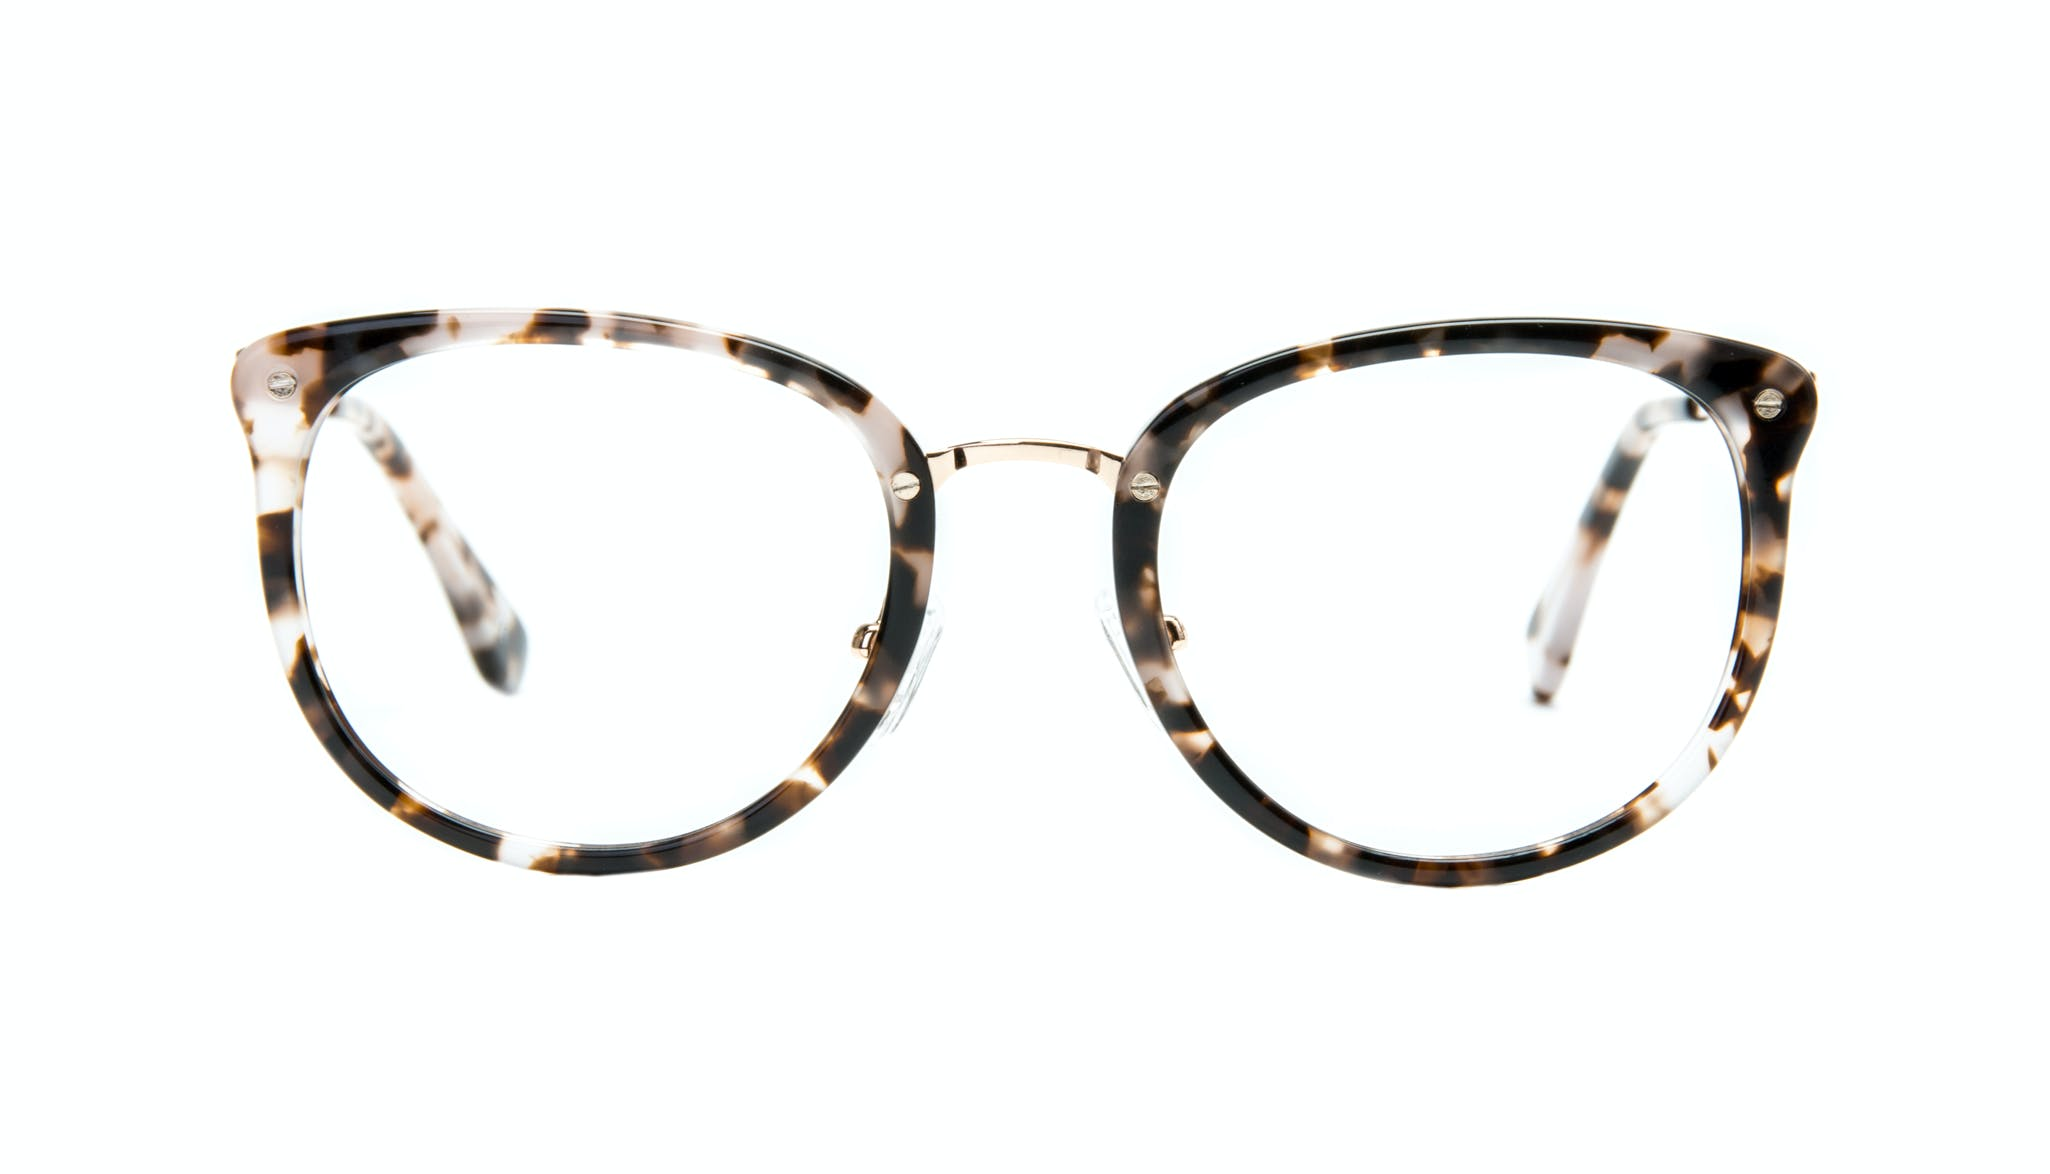 Affordable Fashion Glasses Square Round Eyeglasses Women Amaze Mocha Tortoise Front